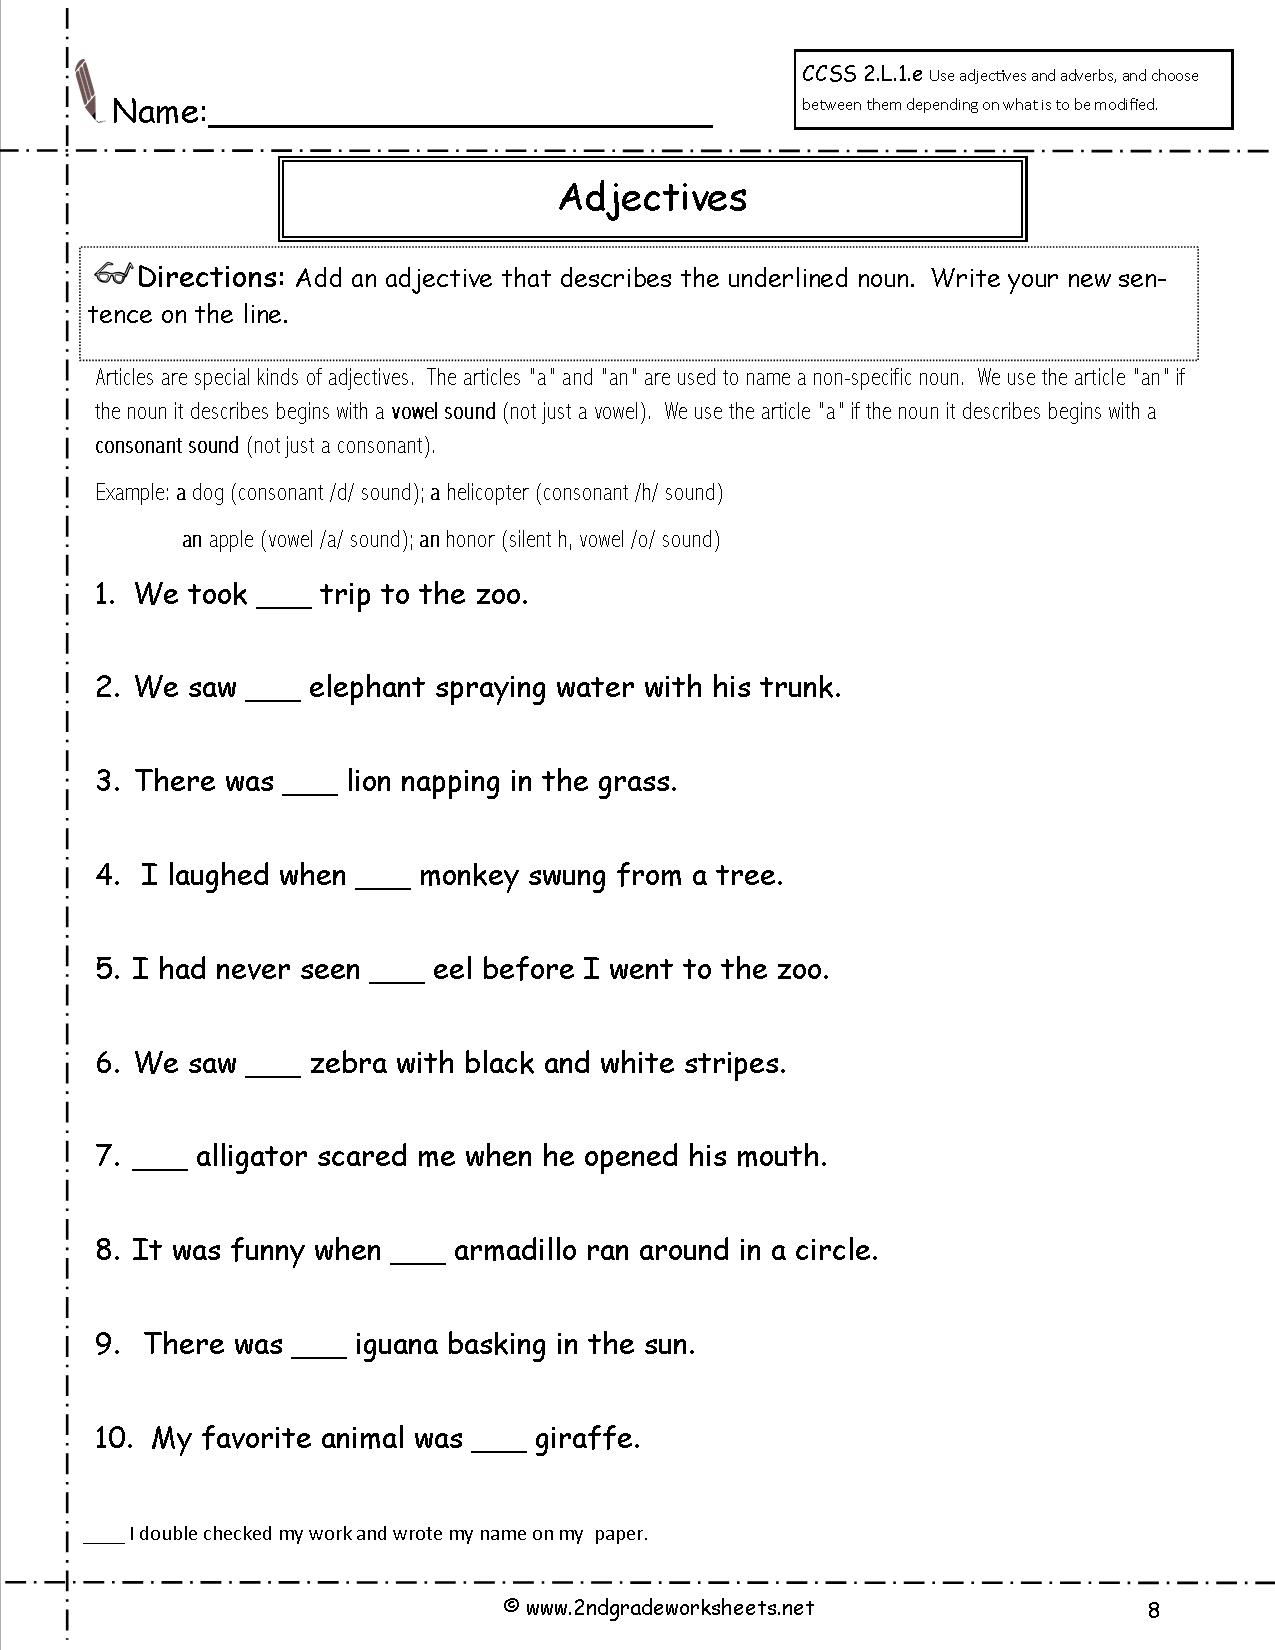 14 Best Images Of Adjectives Worksheets For Grade 5